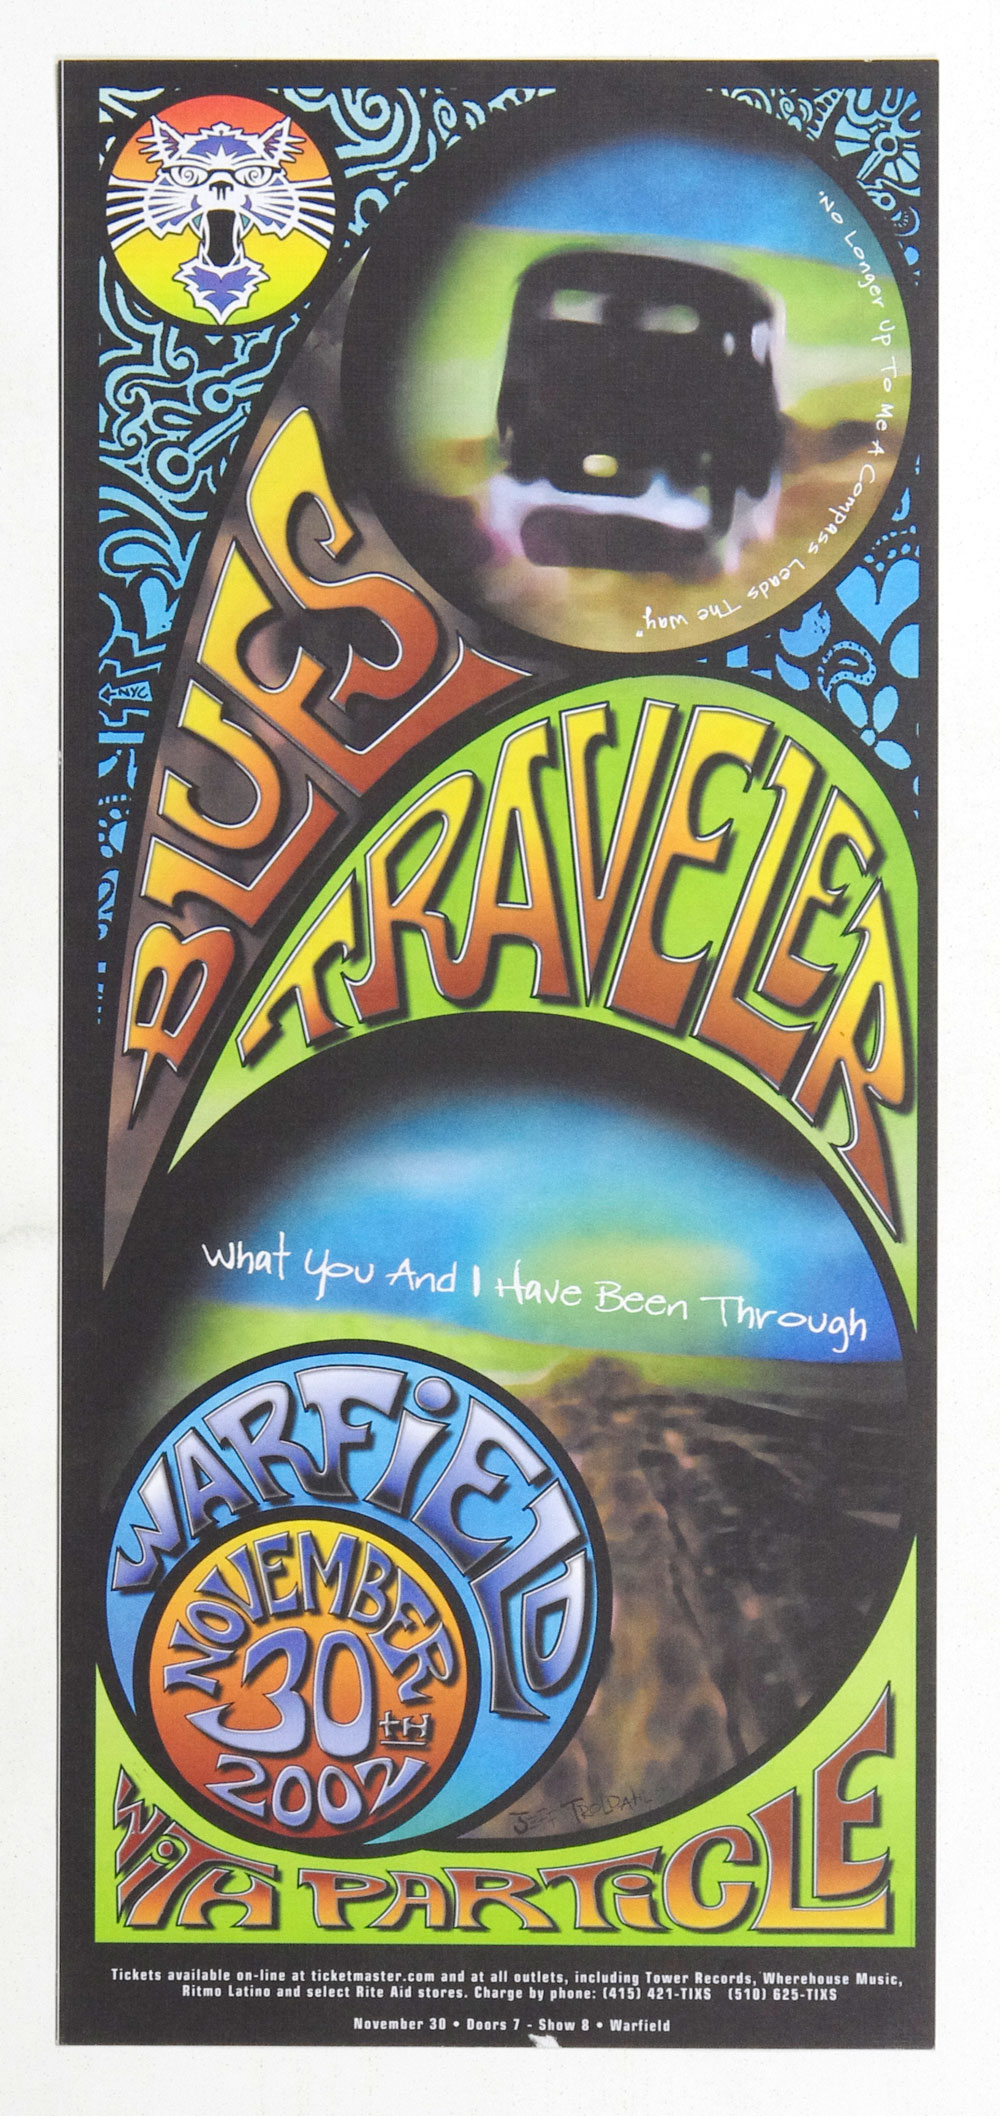 Blues Traveler Poster 2002 Nov 30 The Warffield Theatre San Francsico